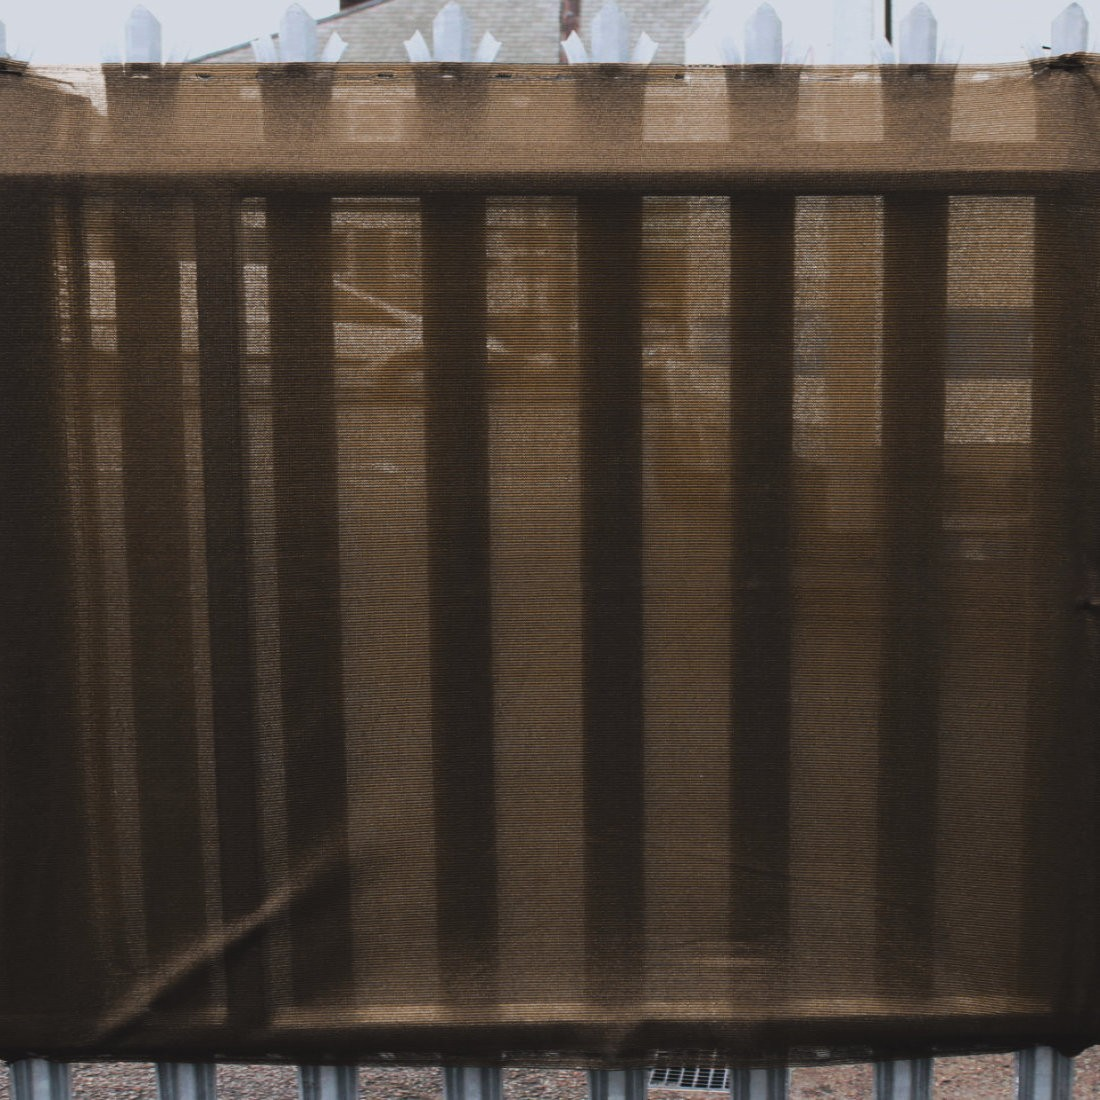 95% Brown Shade Netting for Privacy